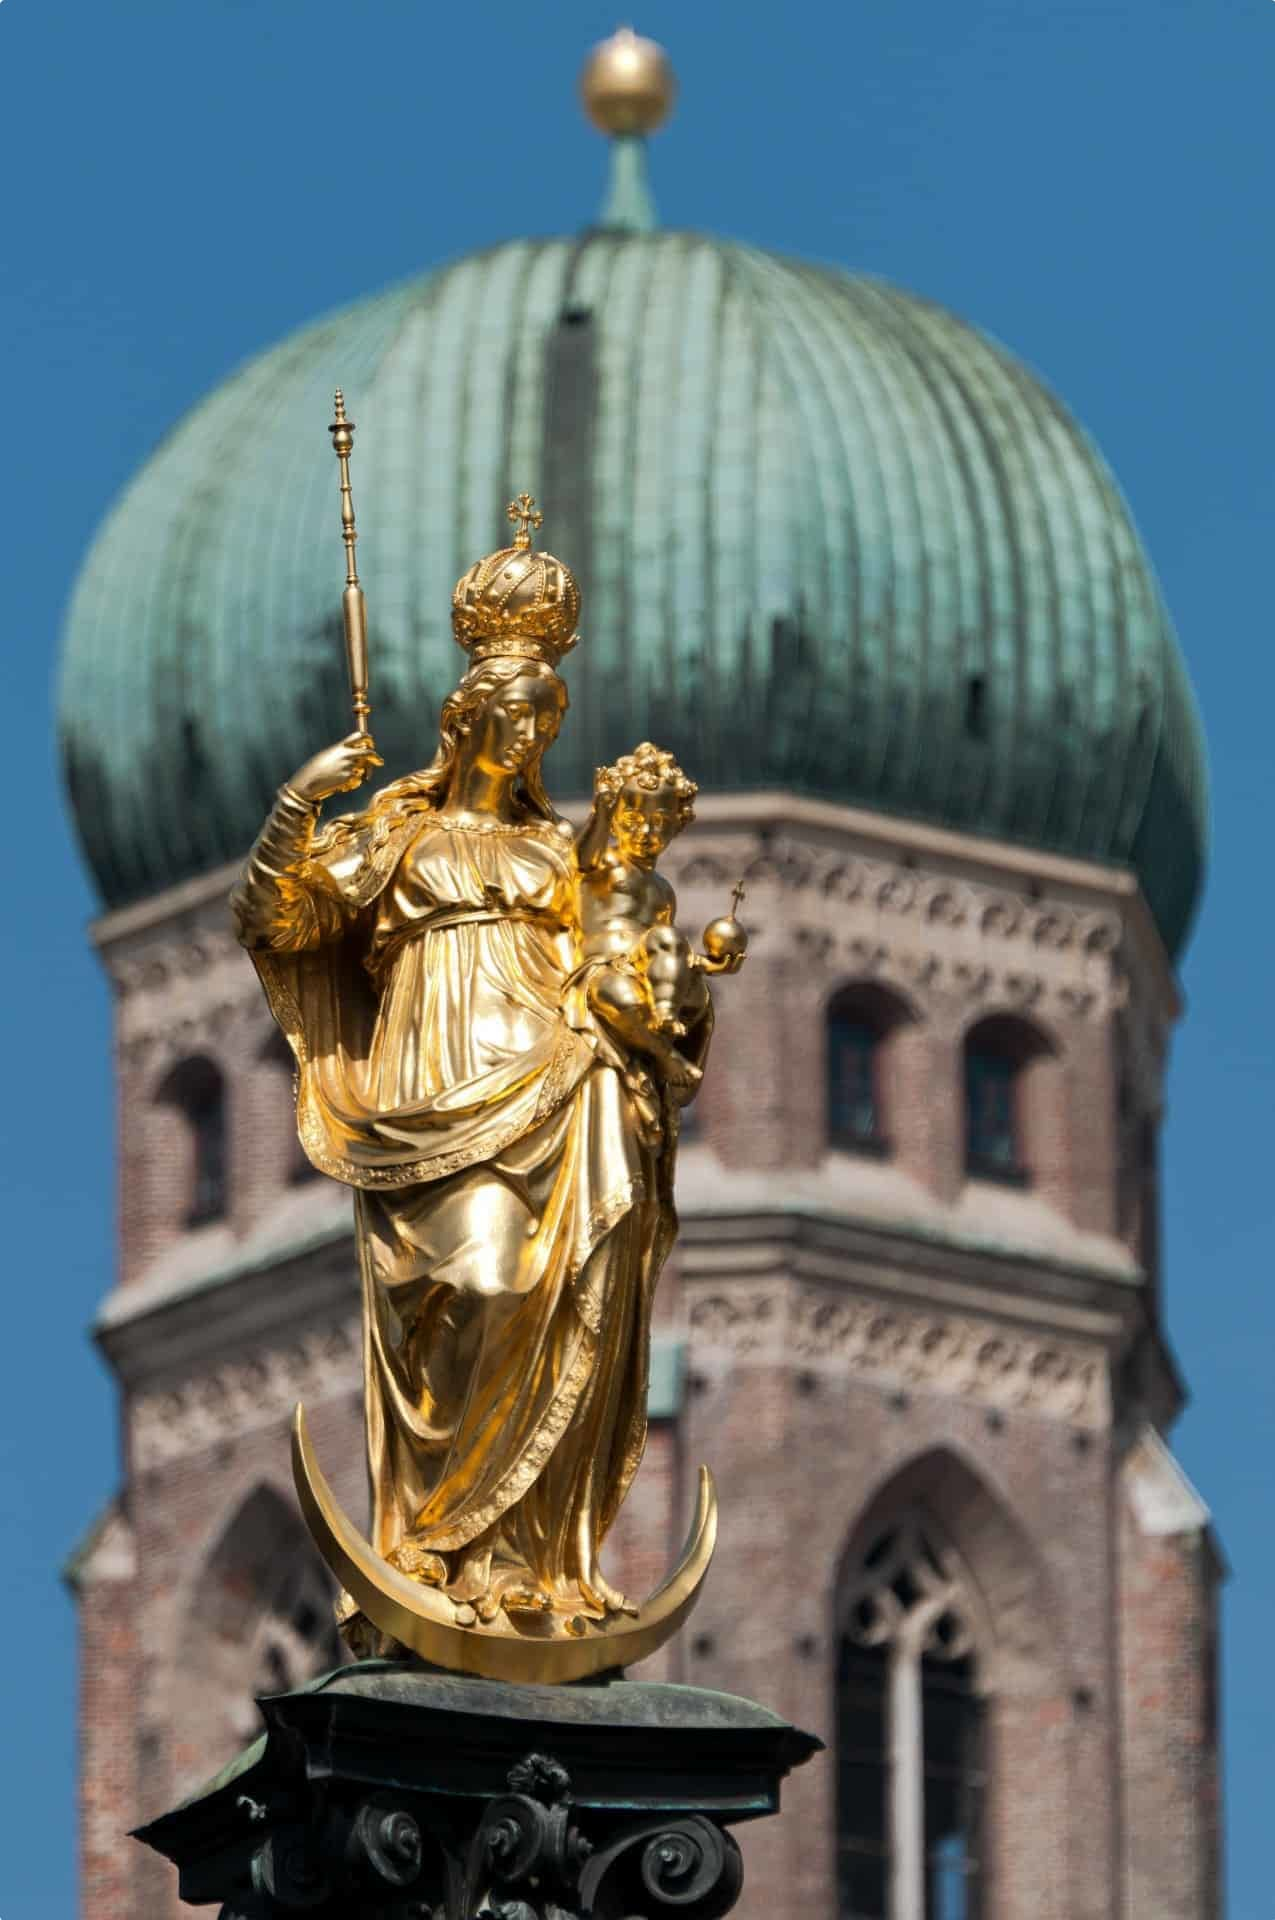 Munich Frauenkirche or Cathedral of our Lady in Munich, Germany